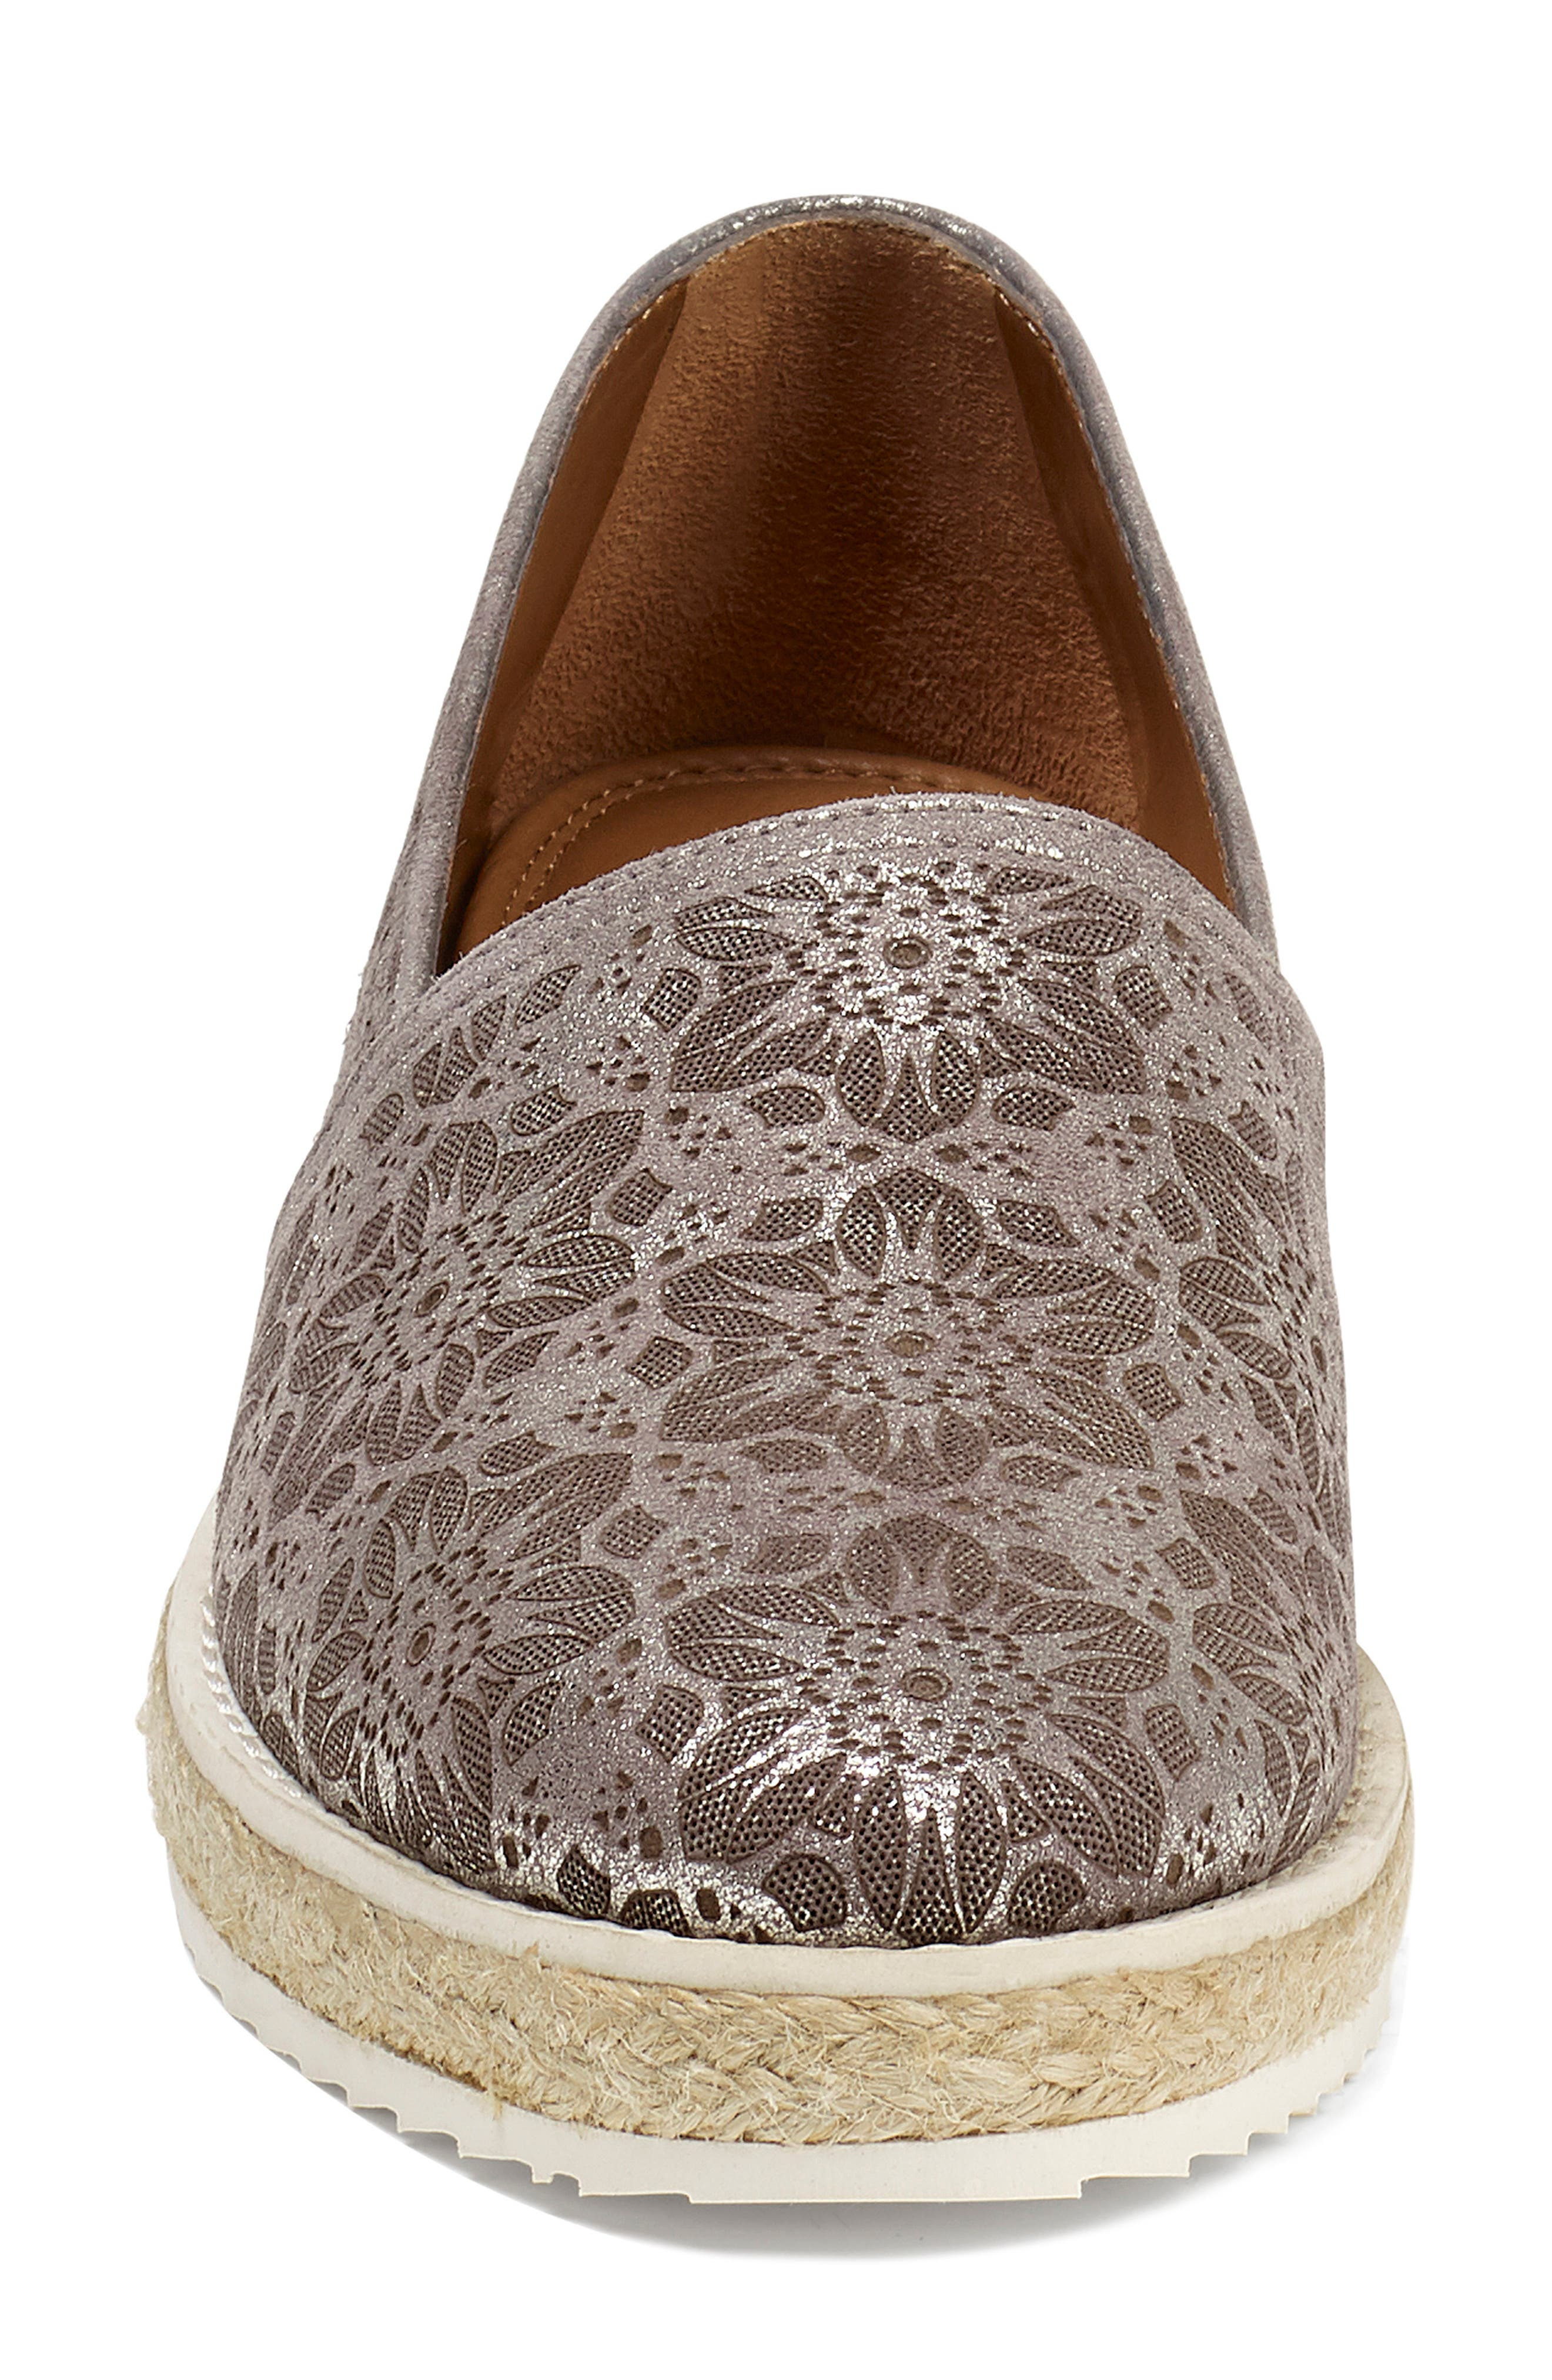 Cailyn Flat,                             Alternate thumbnail 4, color,                             PEWTER METALLIC SUEDE